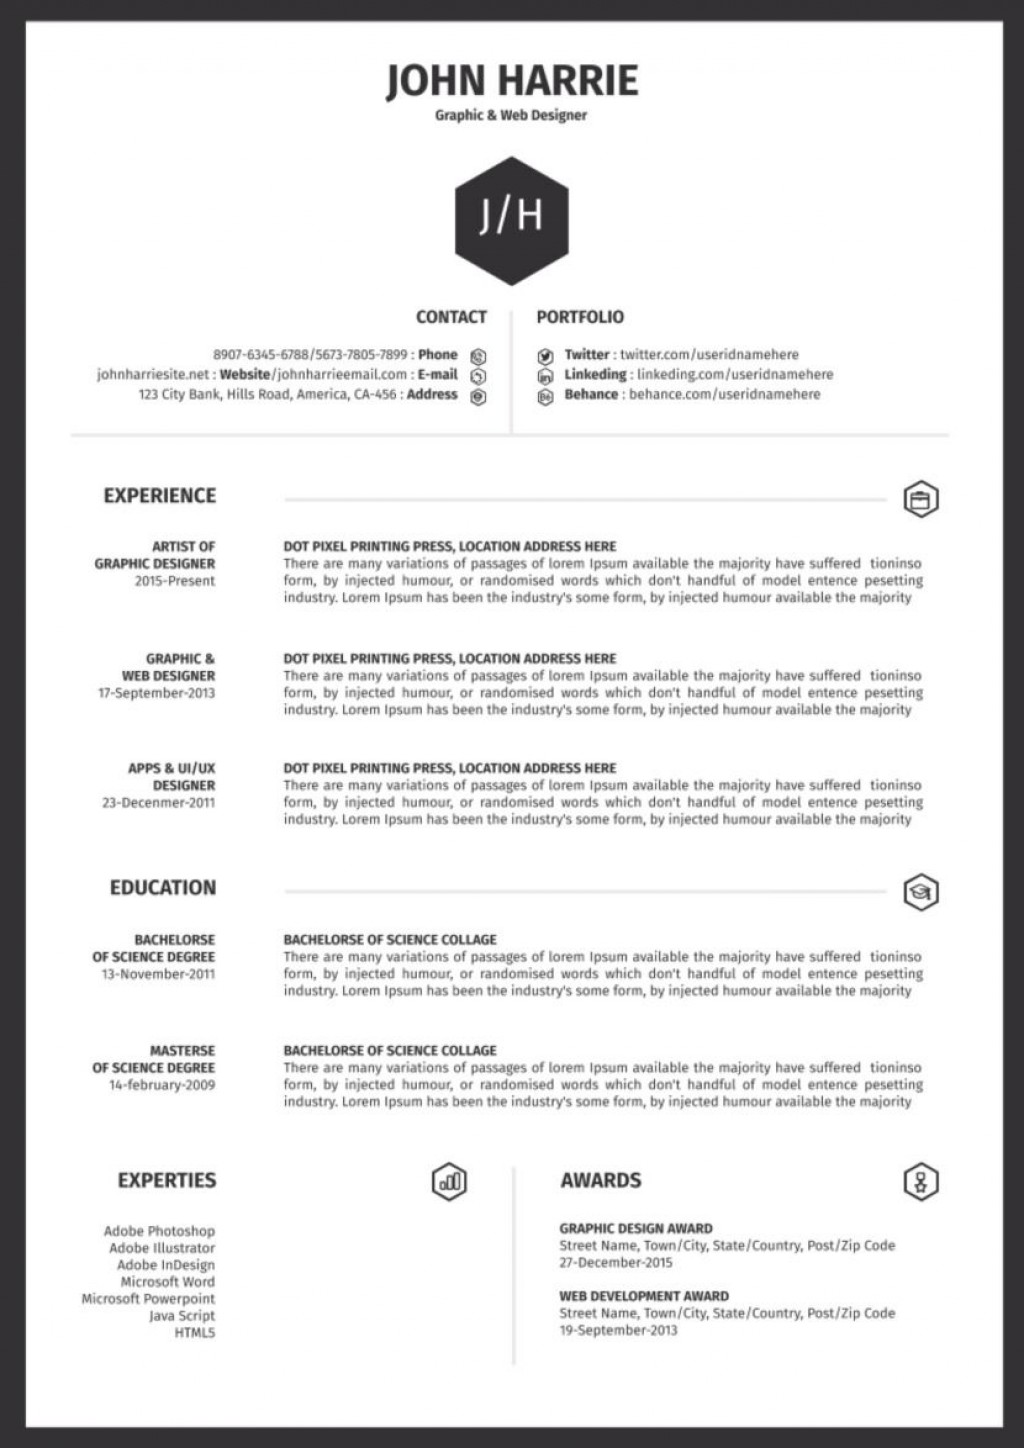 010 Unusual 1 Page Resume Template Idea  Templates One Basic Word Free Html DownloadLarge